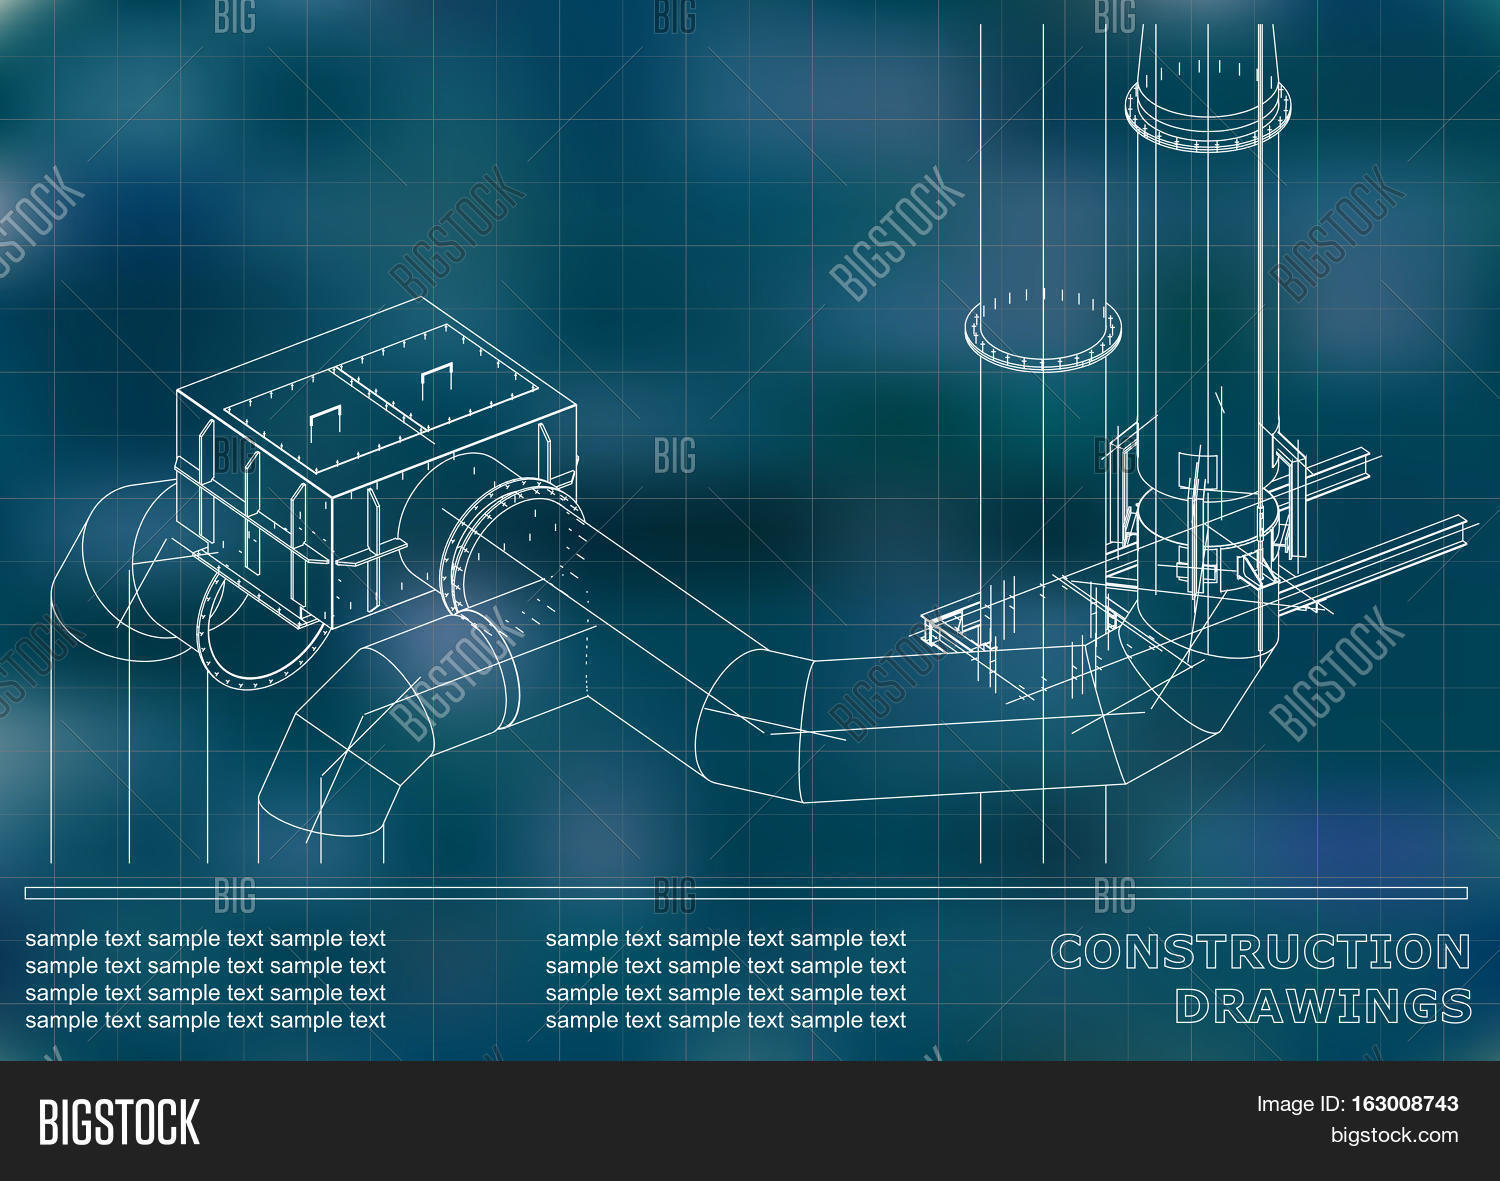 hight resolution of drawings structures vector photo free trial bigstock piping cake borders piping blueprint diagram